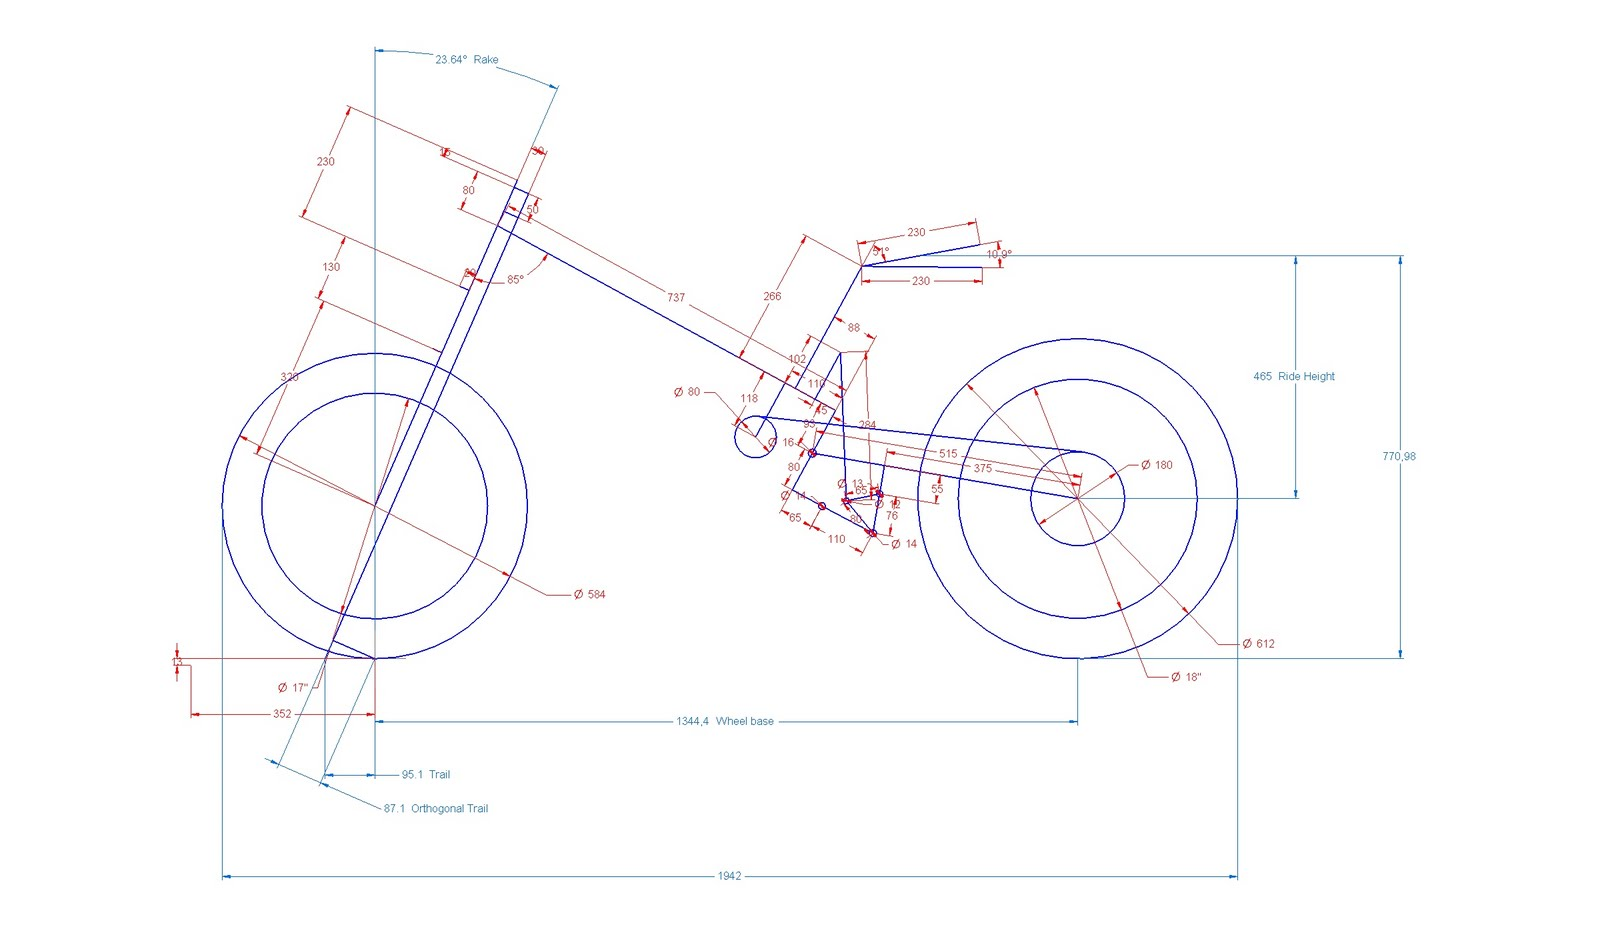 NSR250 Forum: NSR250 Frame and Suspension geometry